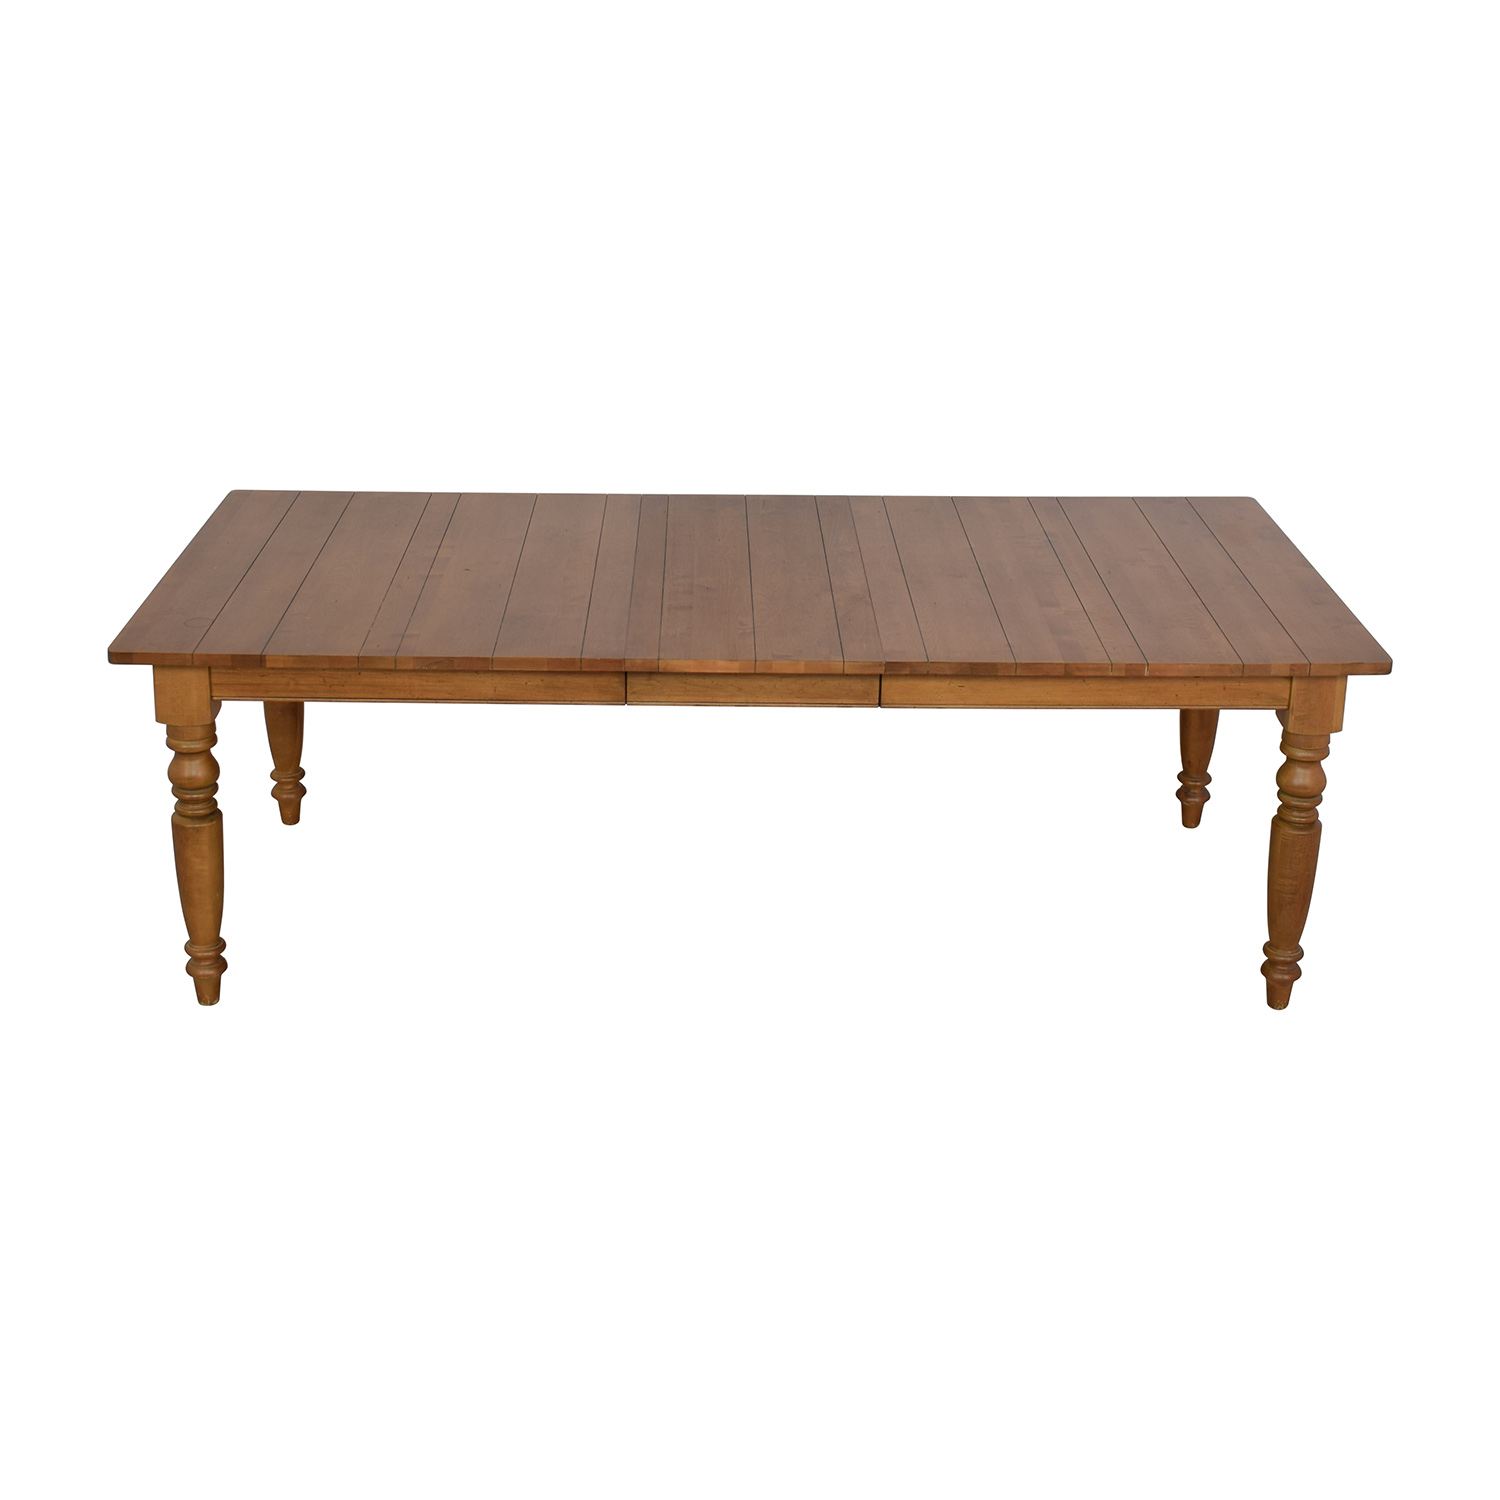 Ethan Allen Ethan Allen Dining Table discount